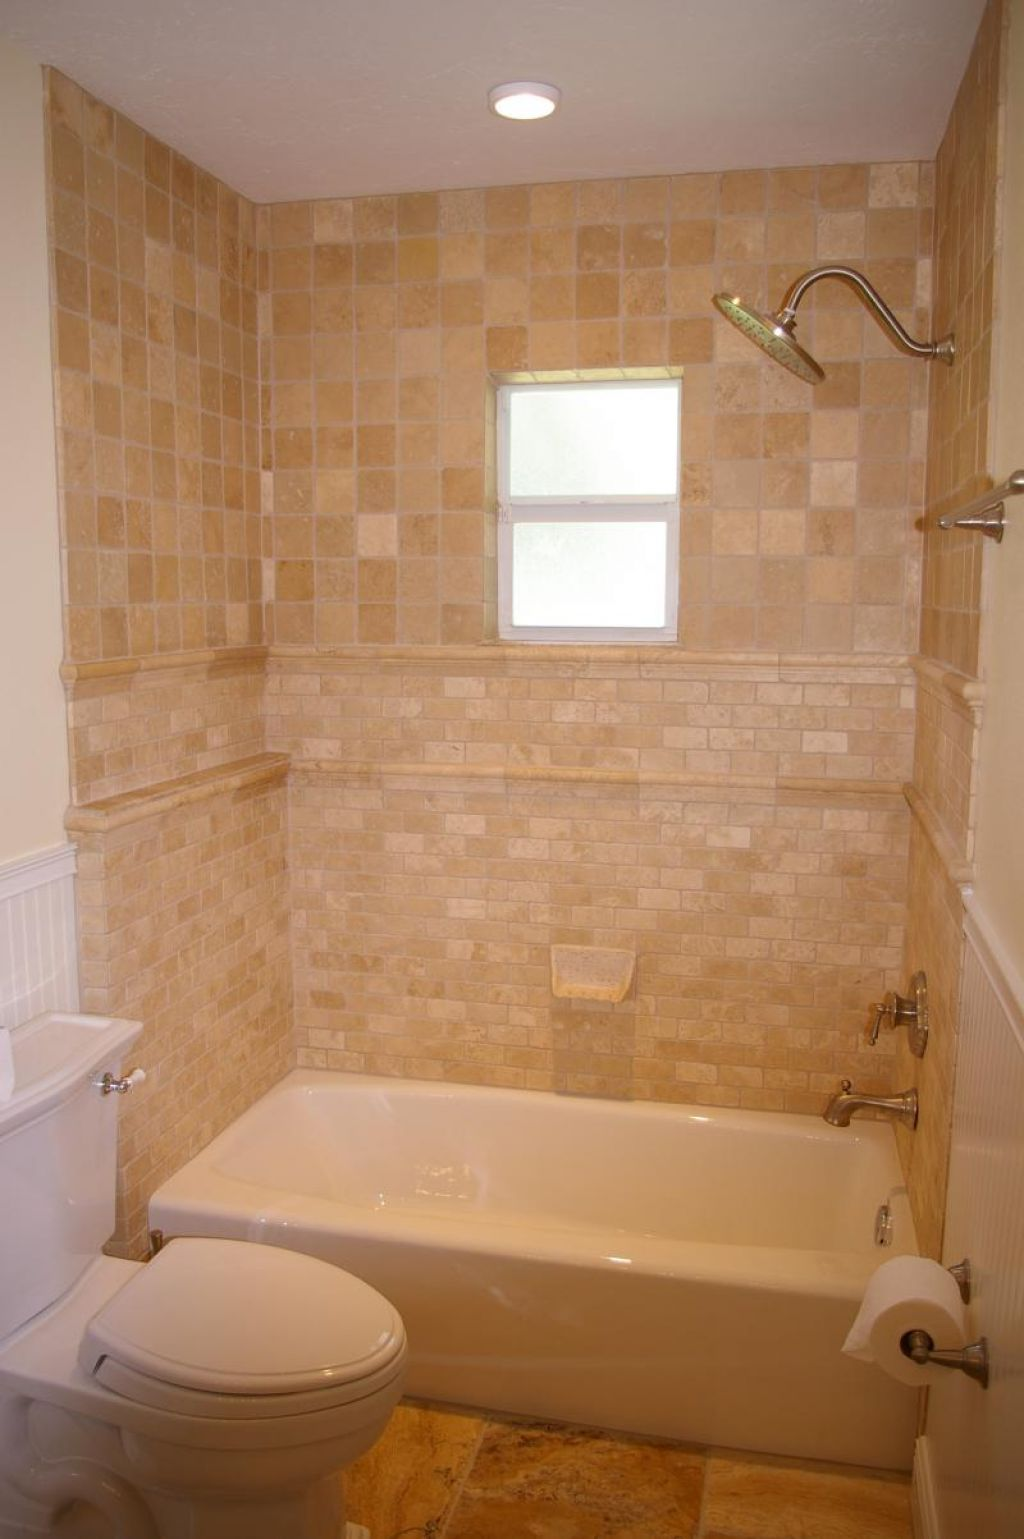 30 shower tile ideas on a budget for Photos of small bathrooms